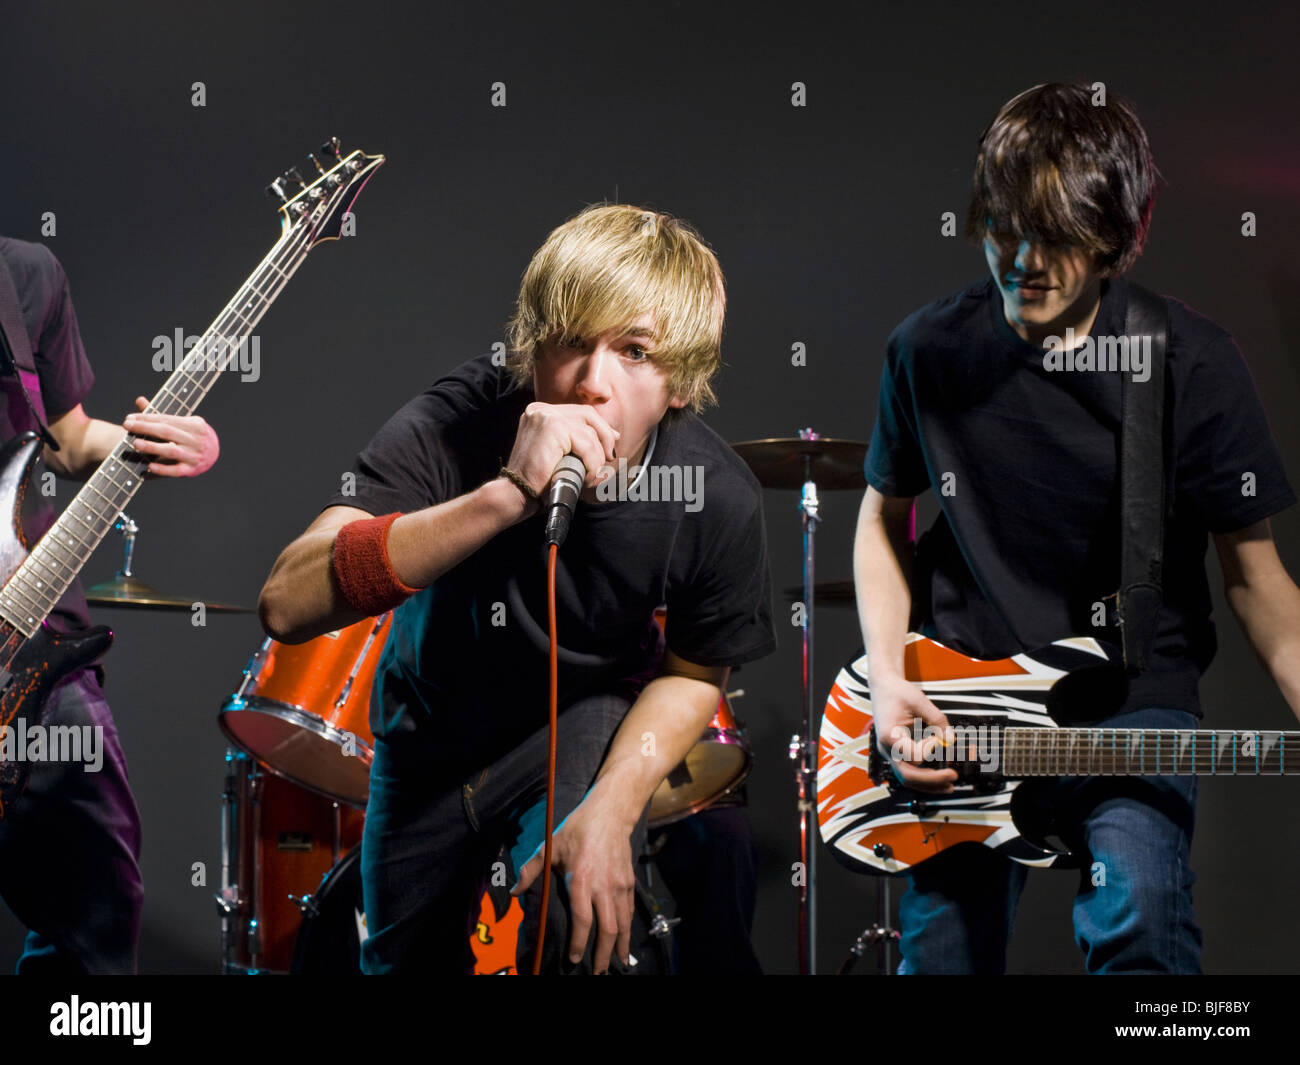 teenage rock band - Stock Image